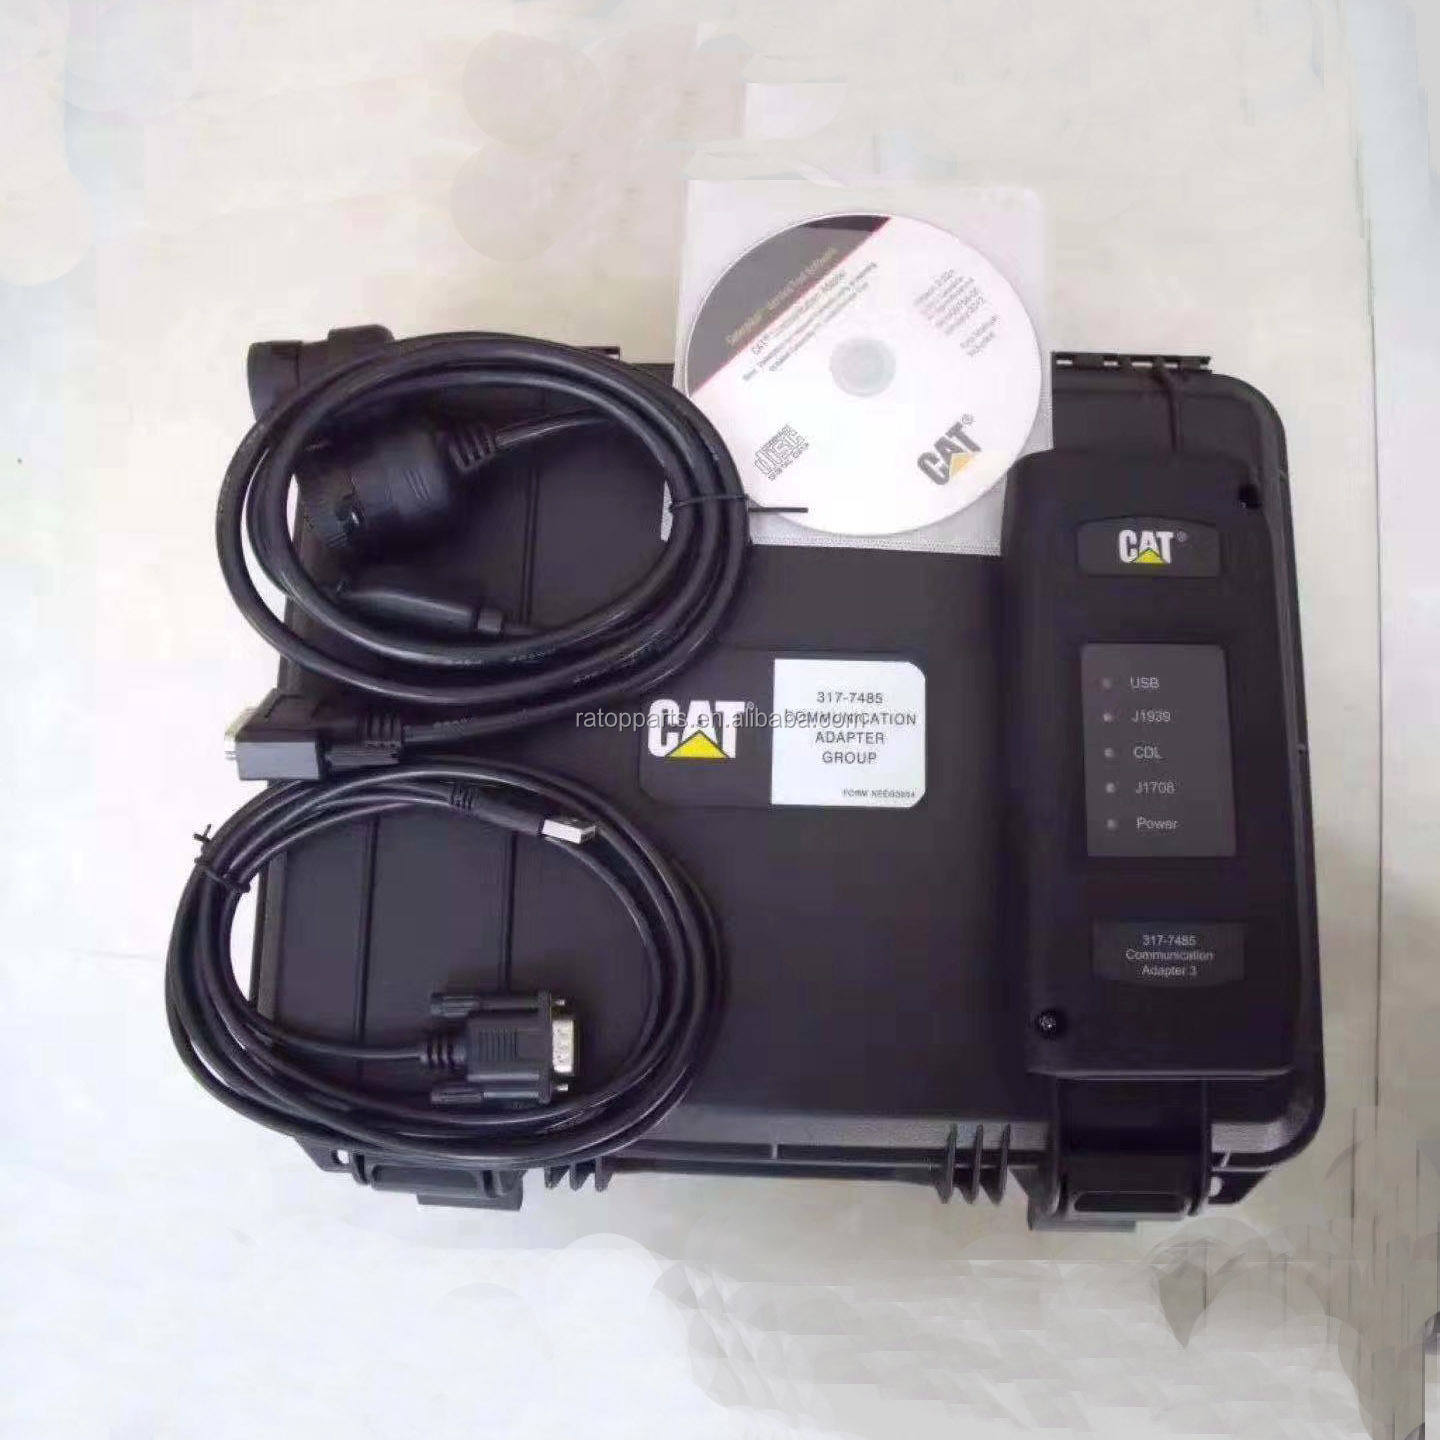 CAT ET3 317-7485 Communication adapter group 3177485